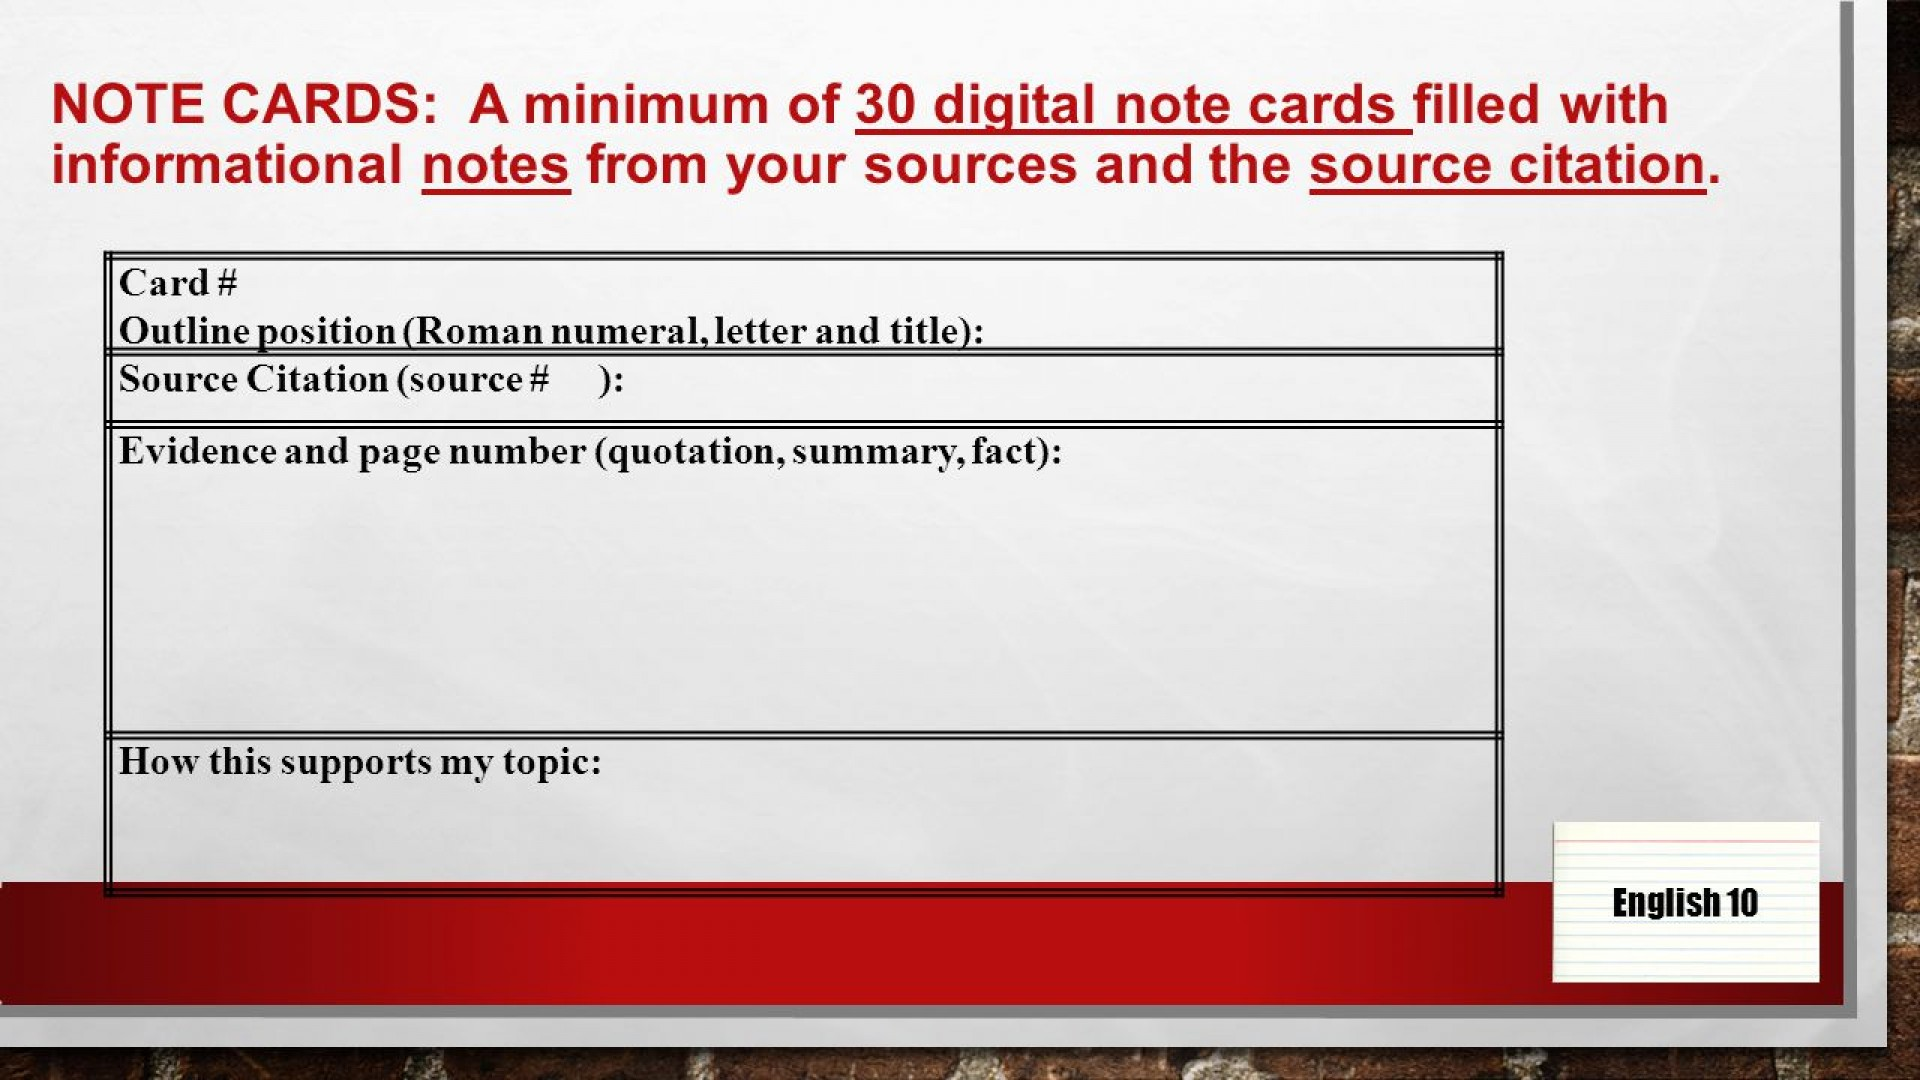 003 Example Of Notecards For Research Paper Slide 4 Fascinating How To Write A Mla Writing 1920